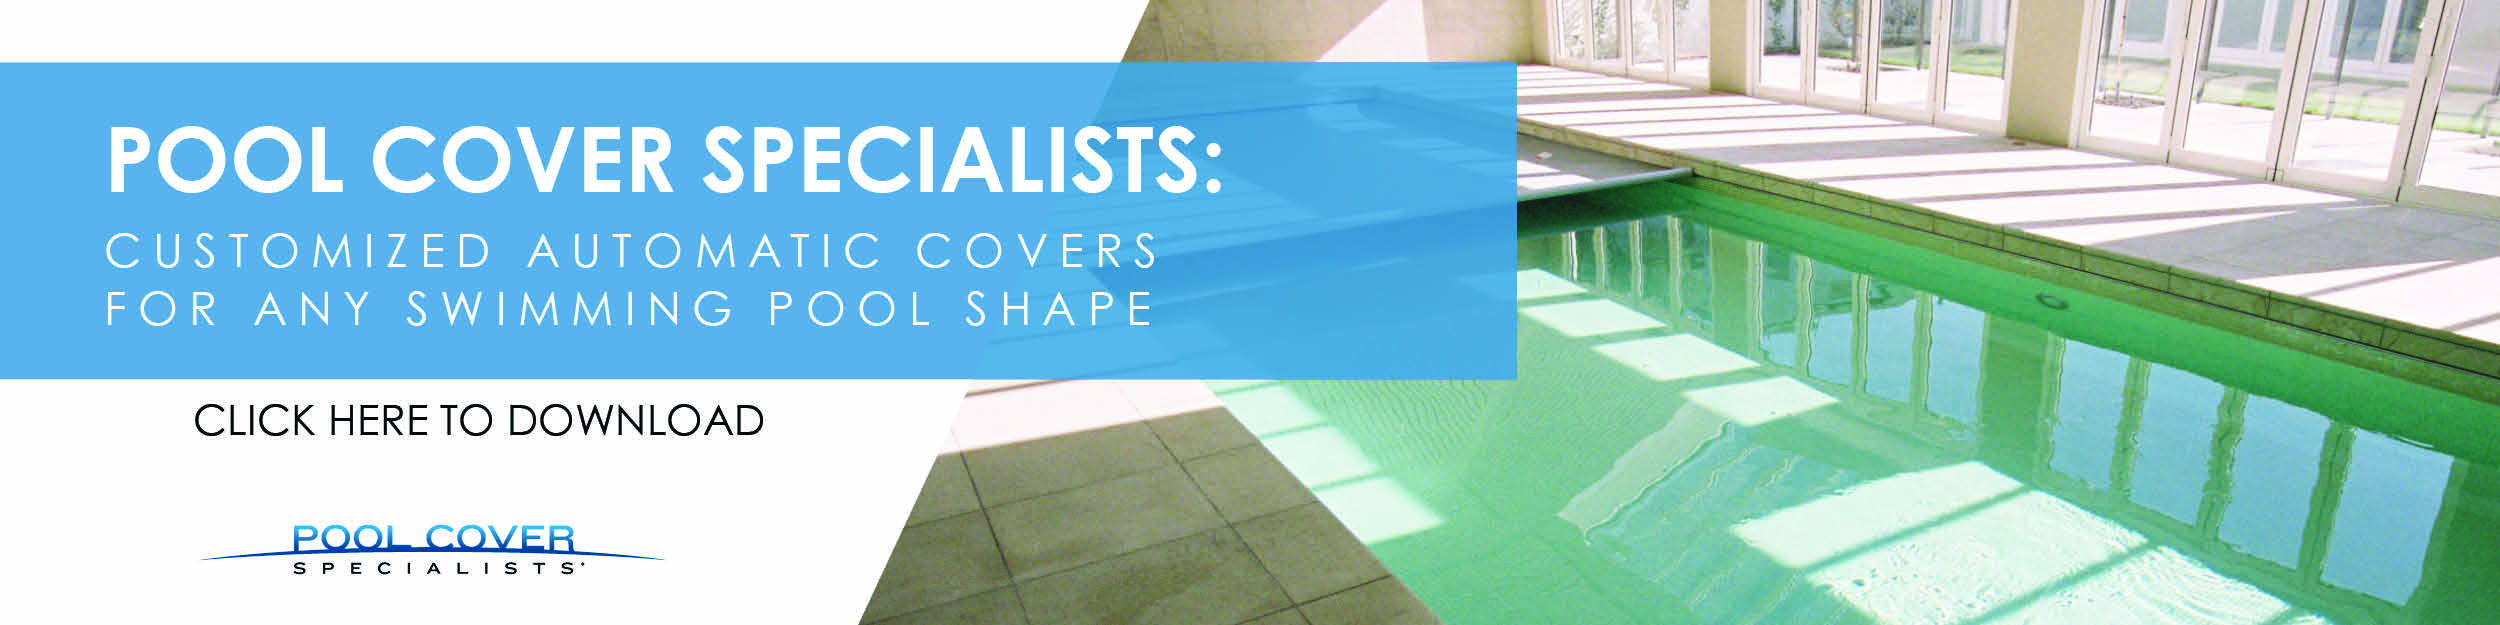 Pool_Cover_Specialists_Automatic_Pool_Covers_For_Every_Pool_Shape